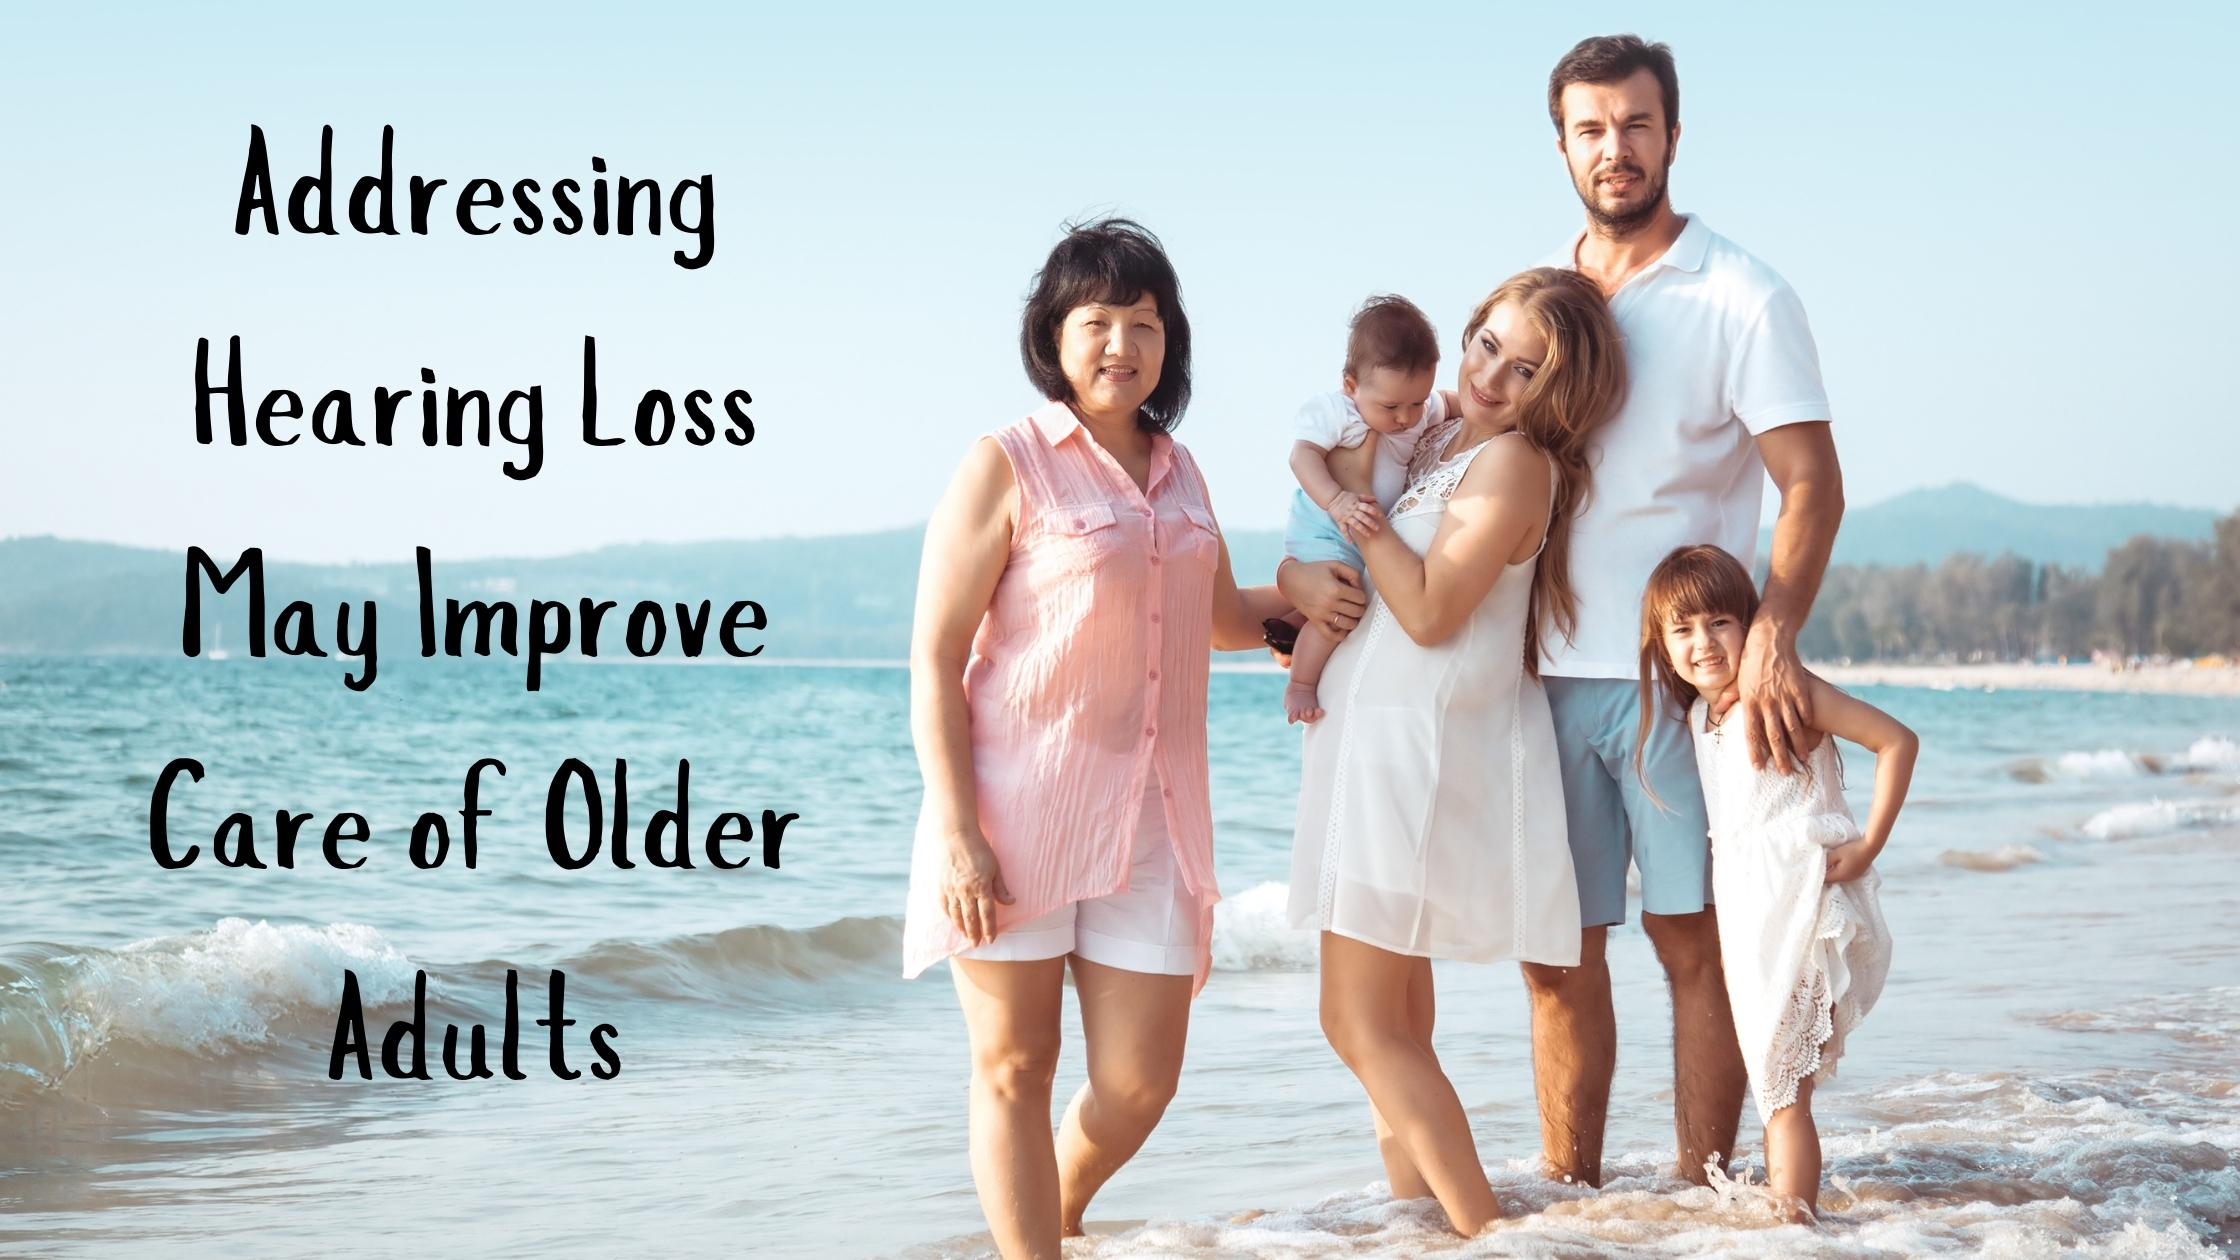 Addressing-Hearing-Loss-May-Improve-Care-of-Older-Adults